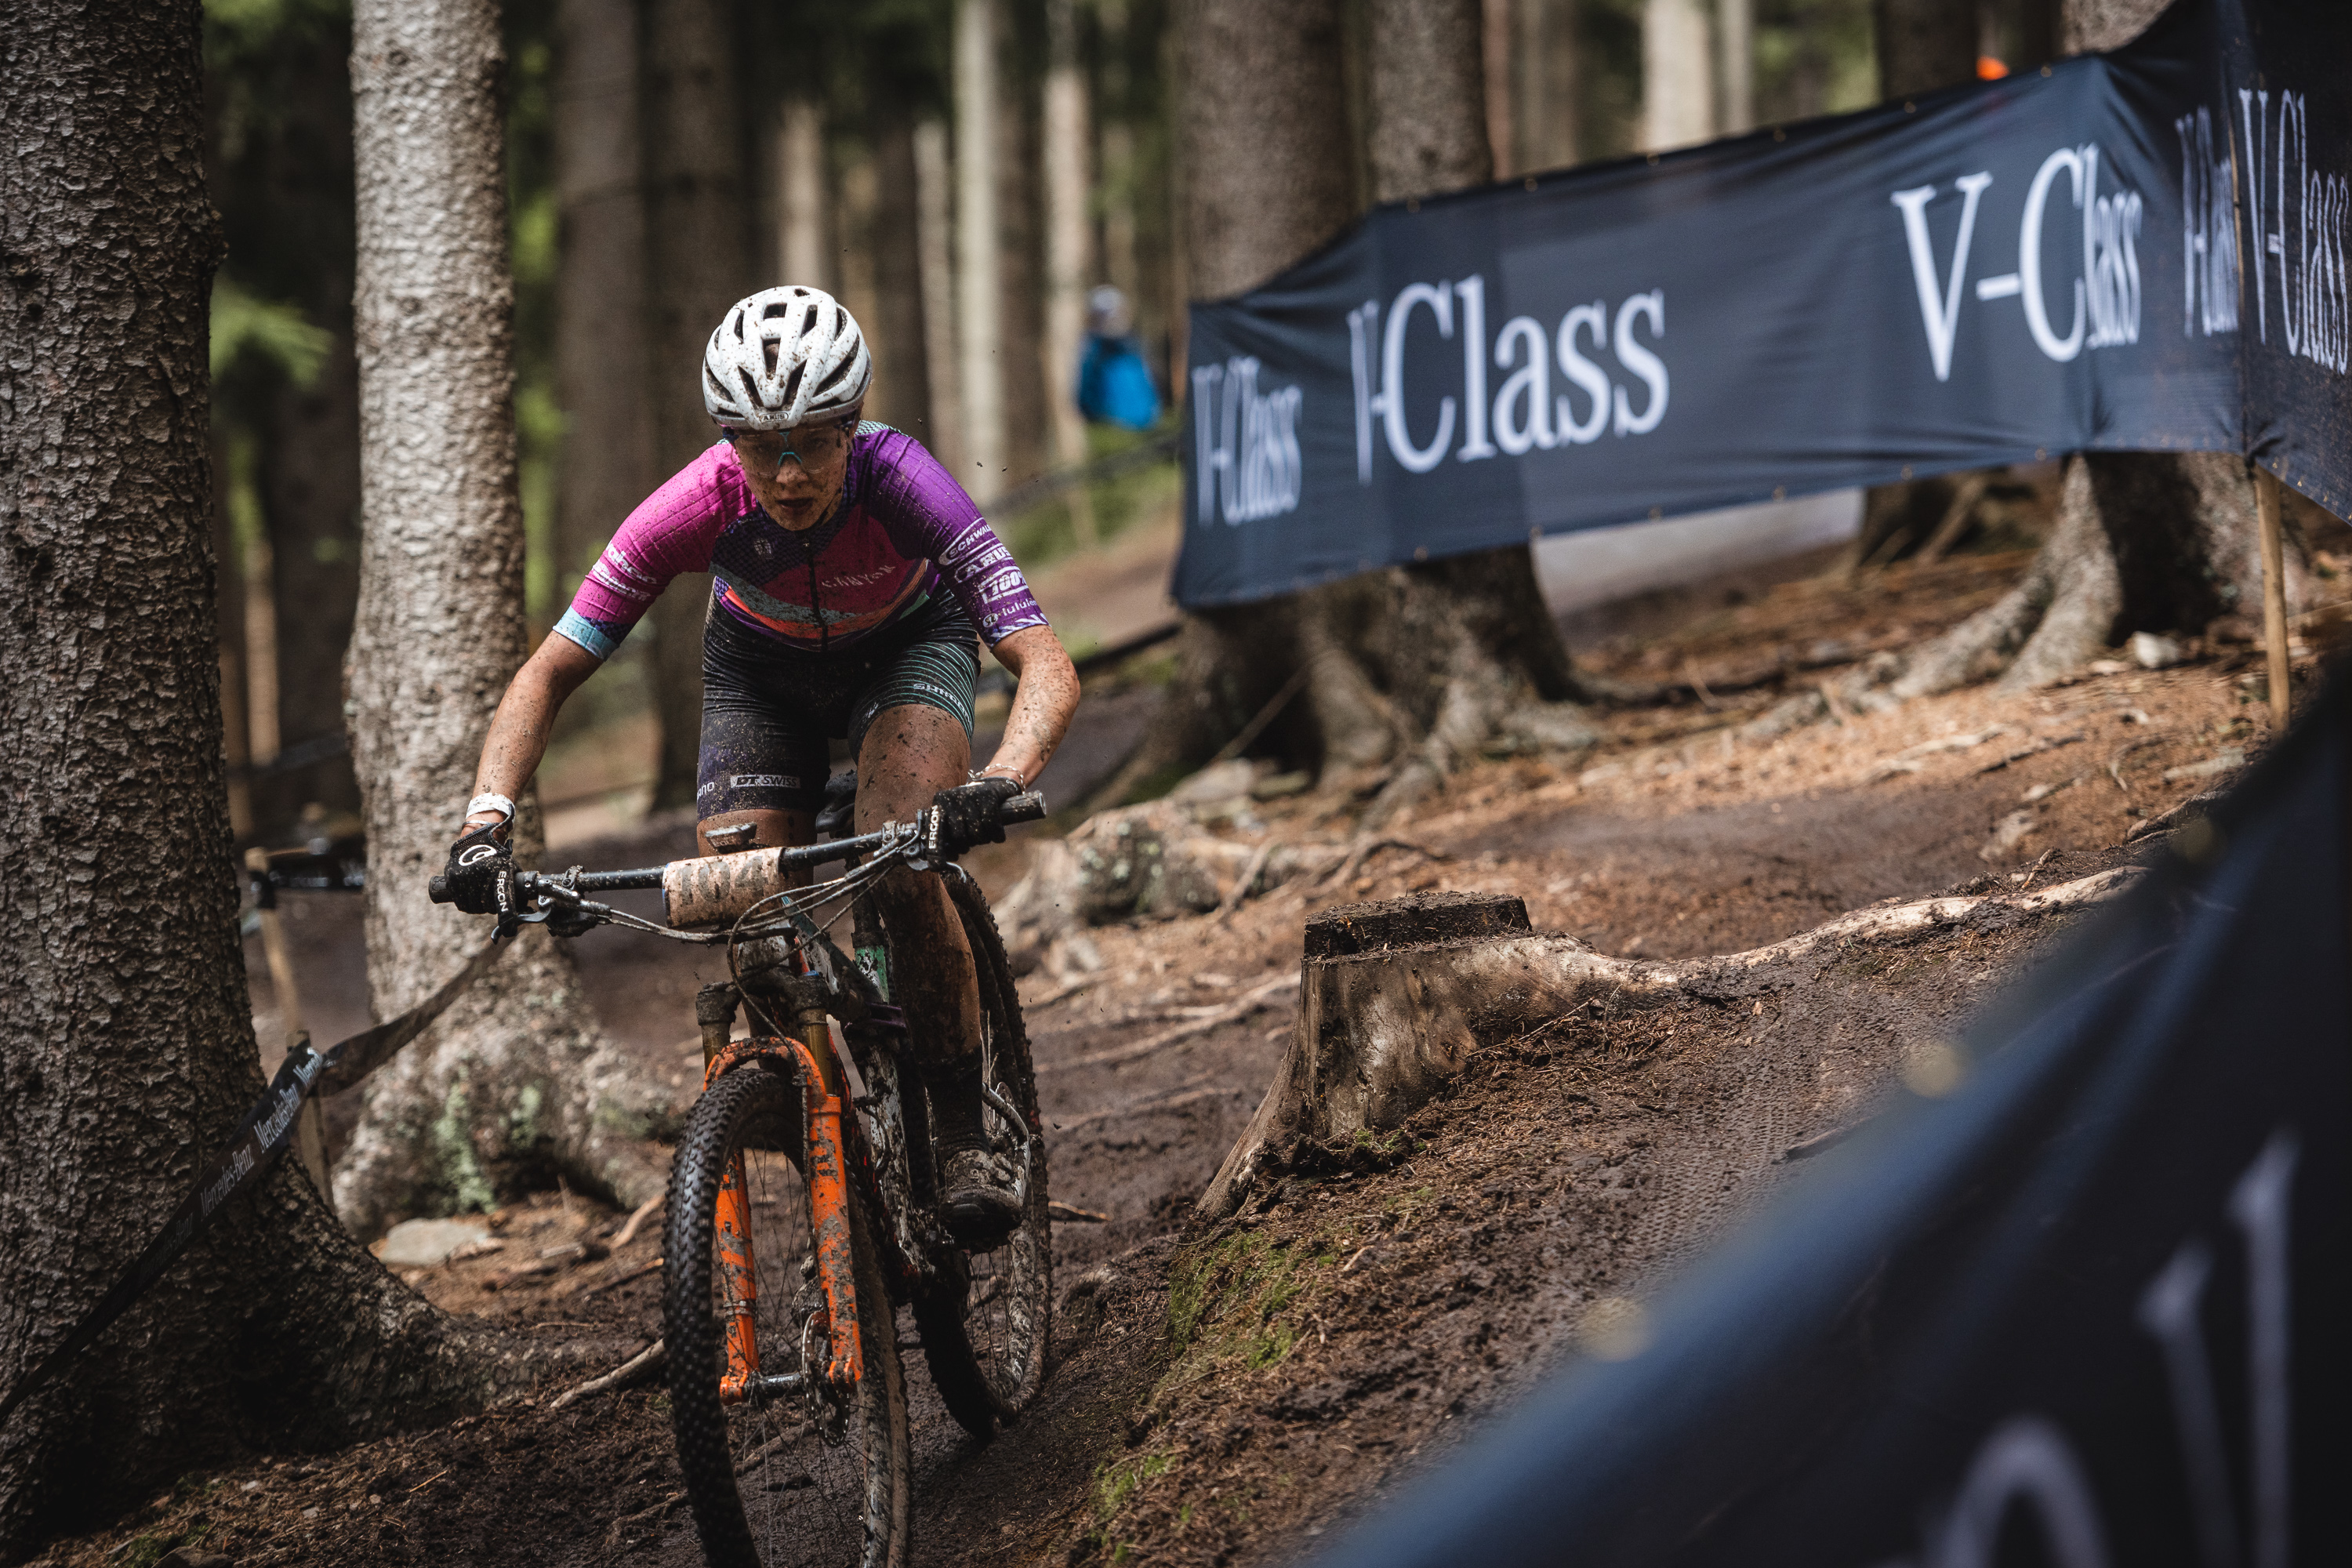 Canyon MTB Racing Slips and Slides to 2 Top-20s in Nové Město